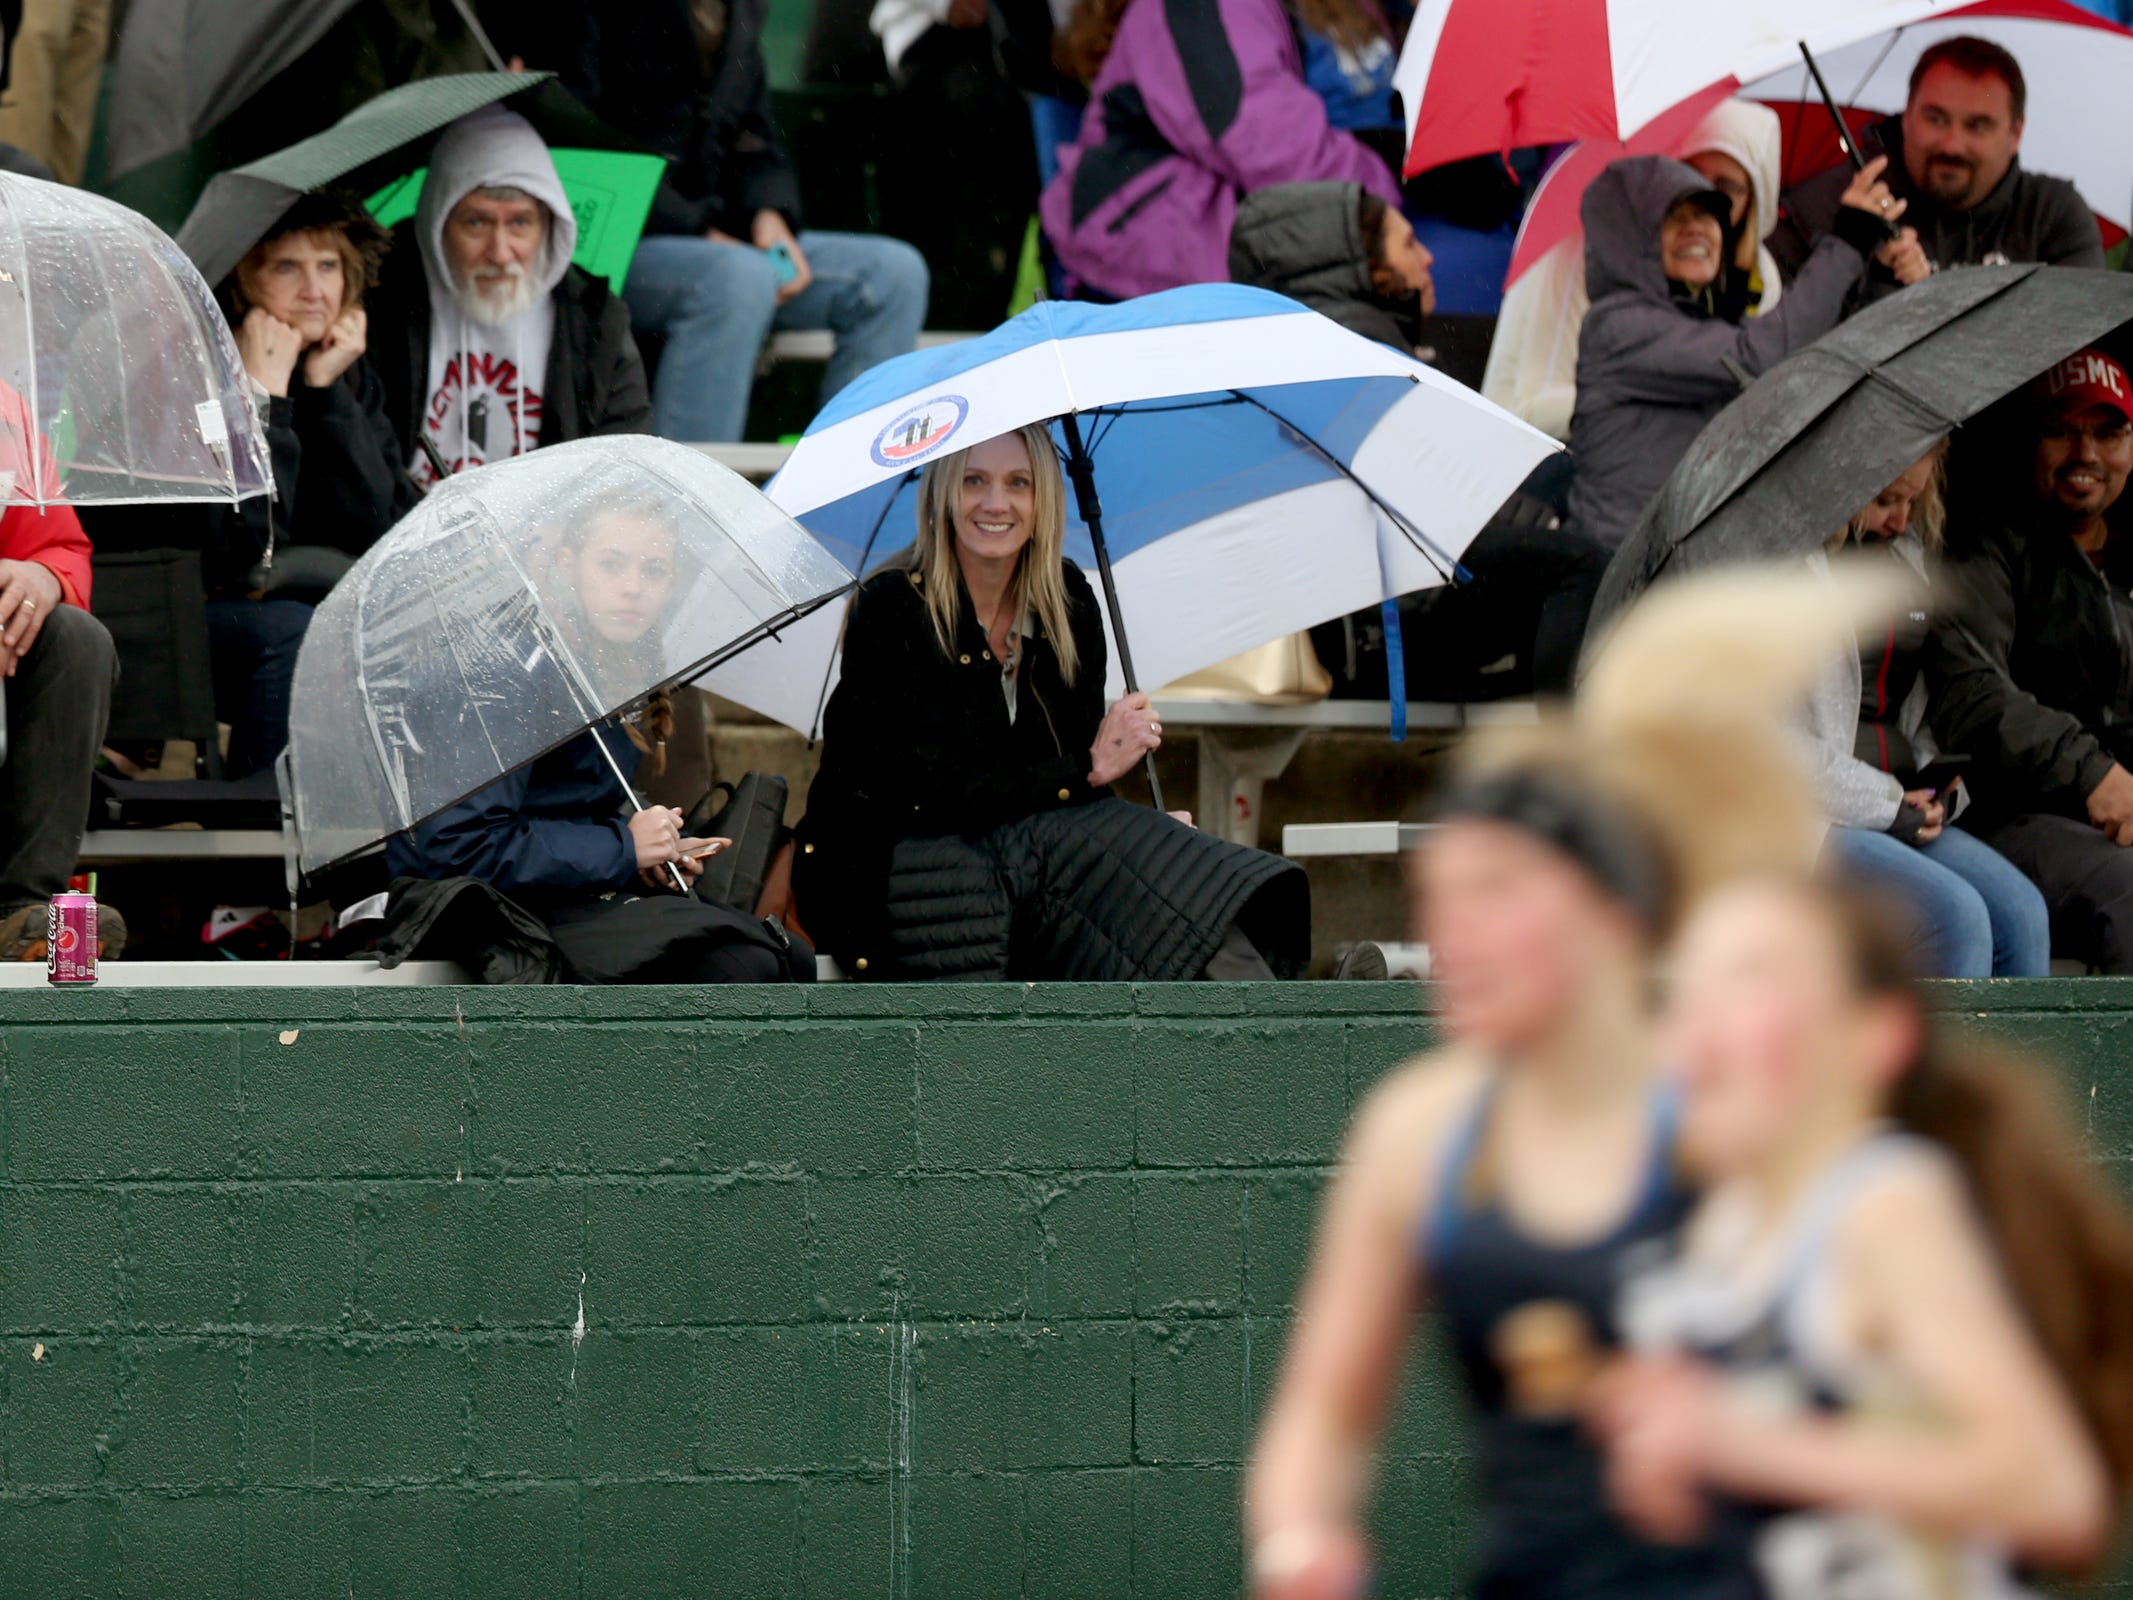 Fans watch the girls 1500 meter race during the Titan Track Classic high school track and field meet at West Salem High School on April 5, 2019.